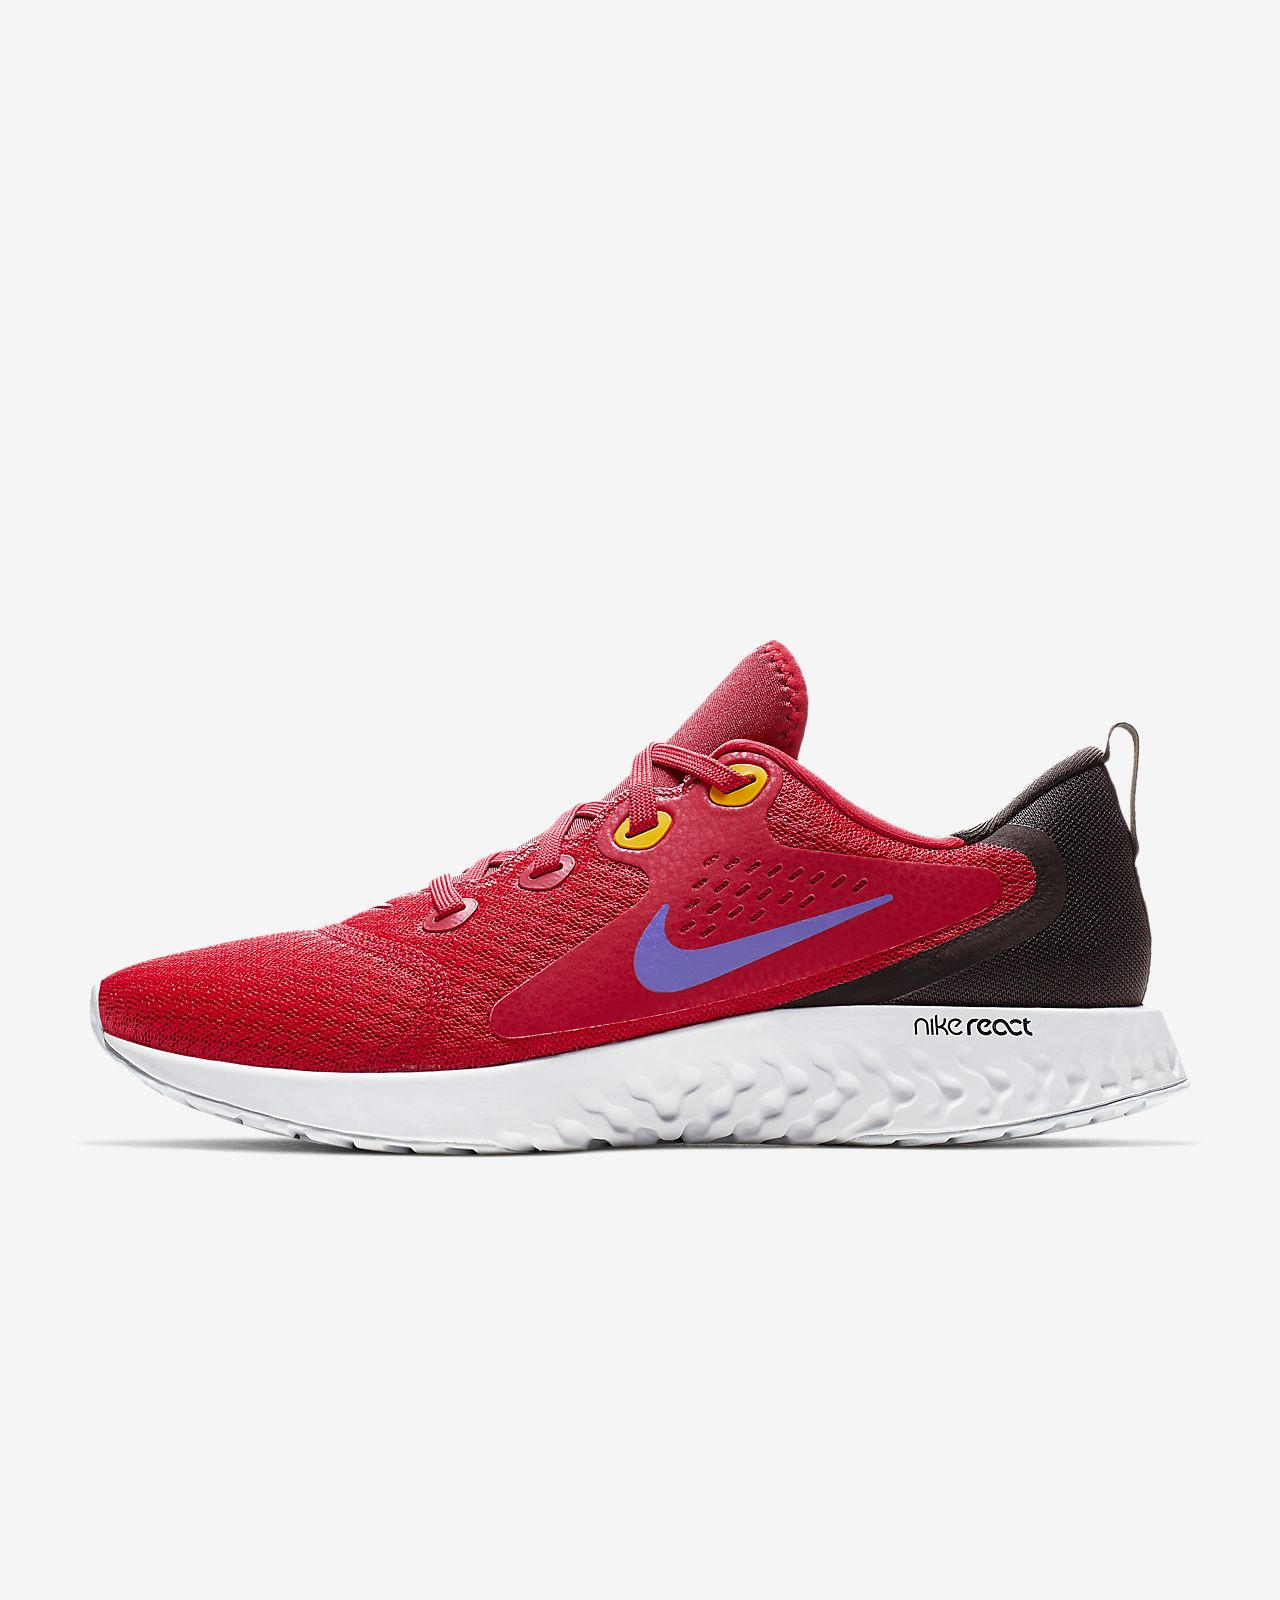 finest selection d6f0a 4c77e Men s Running Shoe. Nike Legend React